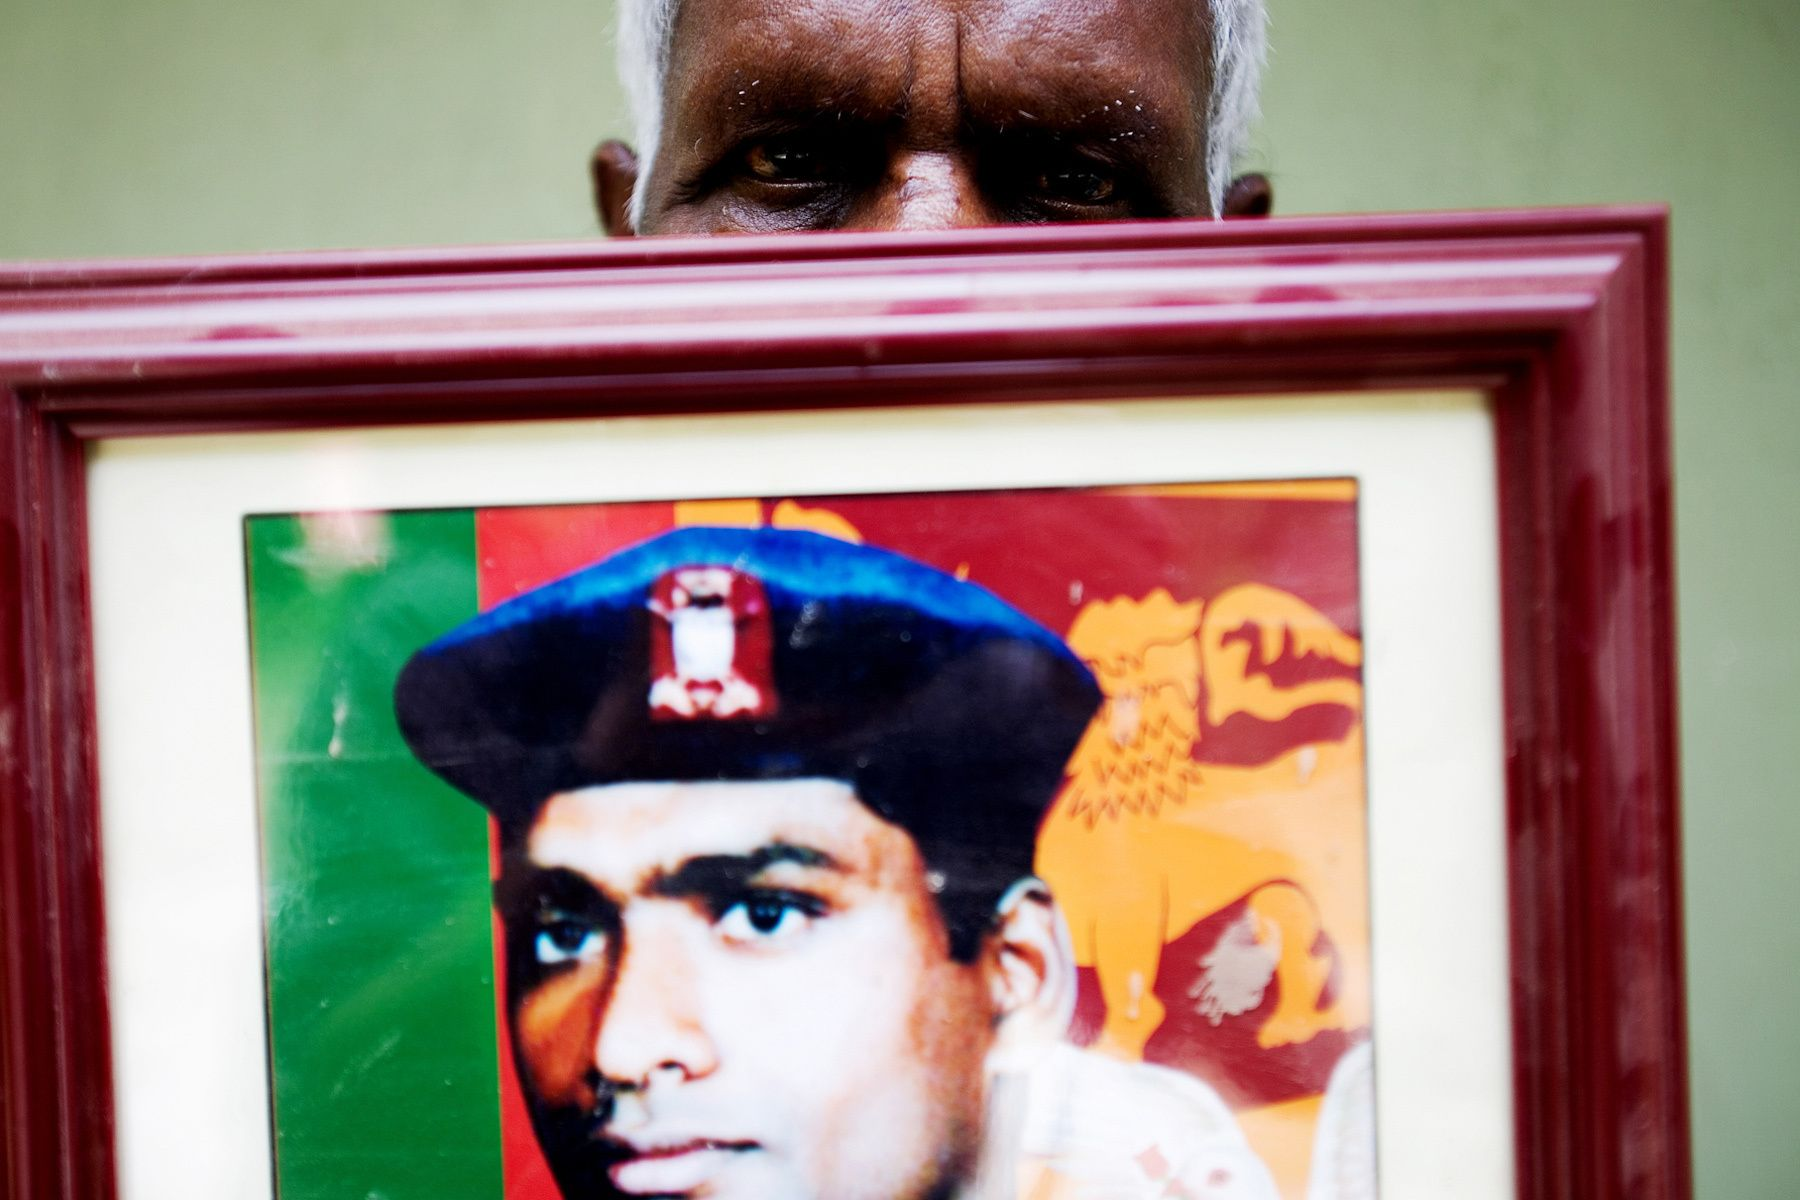 """My son was a Sri Lanka Army soldier. He died while fighting with the LTTE in the North. He was just twenty-two years old. They couldn't find my son's body, so I still hope that he is still alive somewhere in this country."""